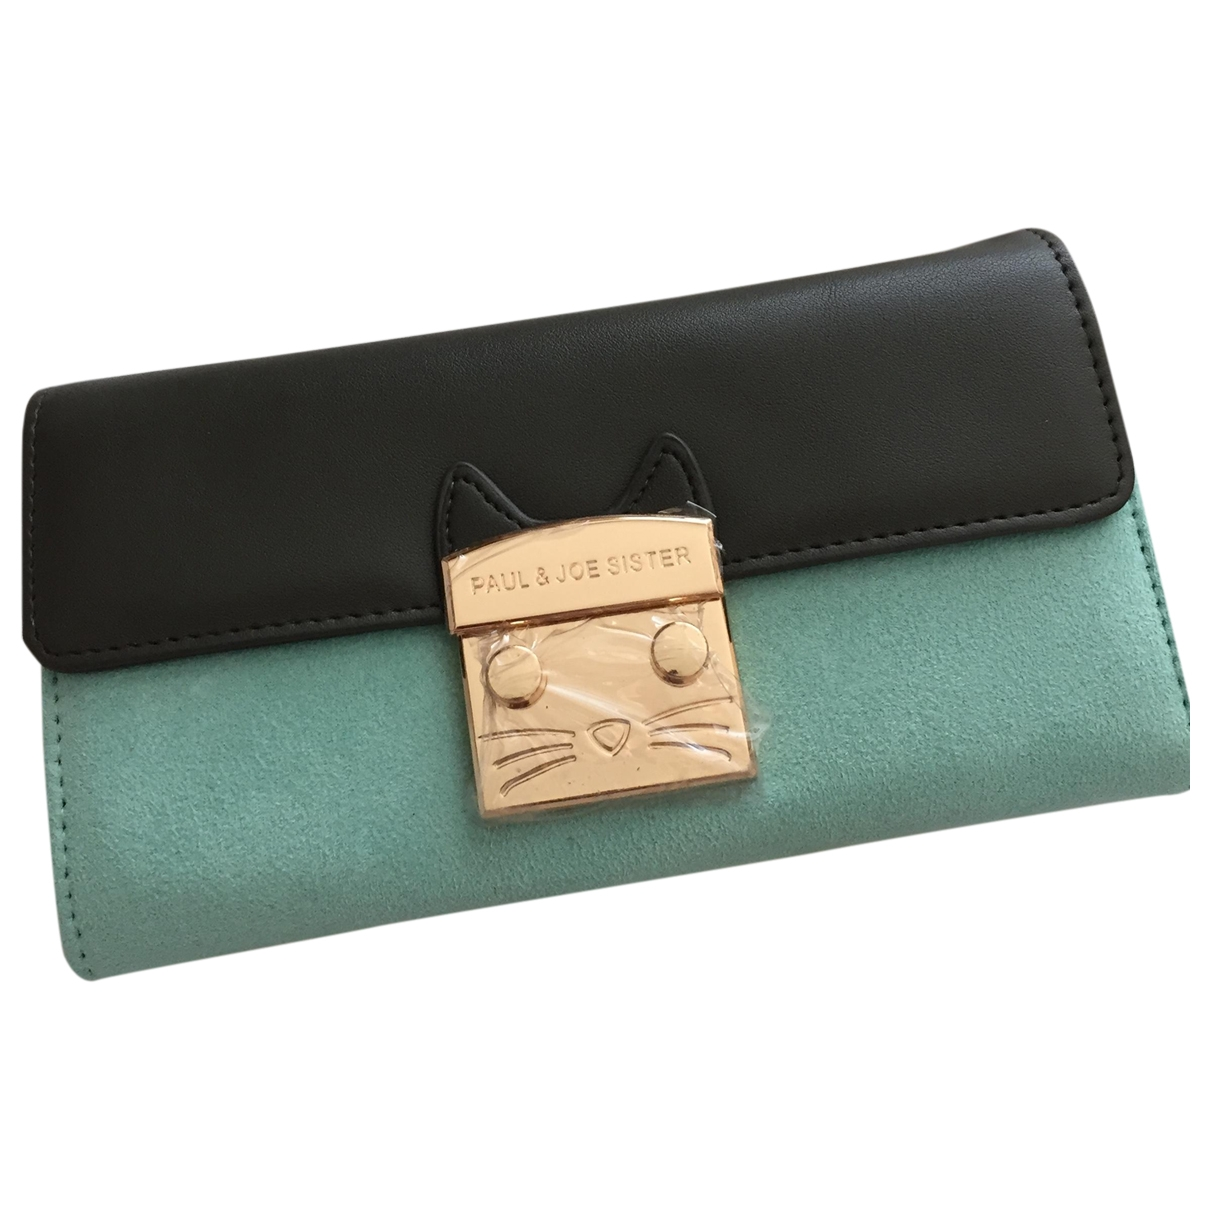 Paul & Joe Sister \N Anthracite Leather Purses, wallet & cases for Women \N